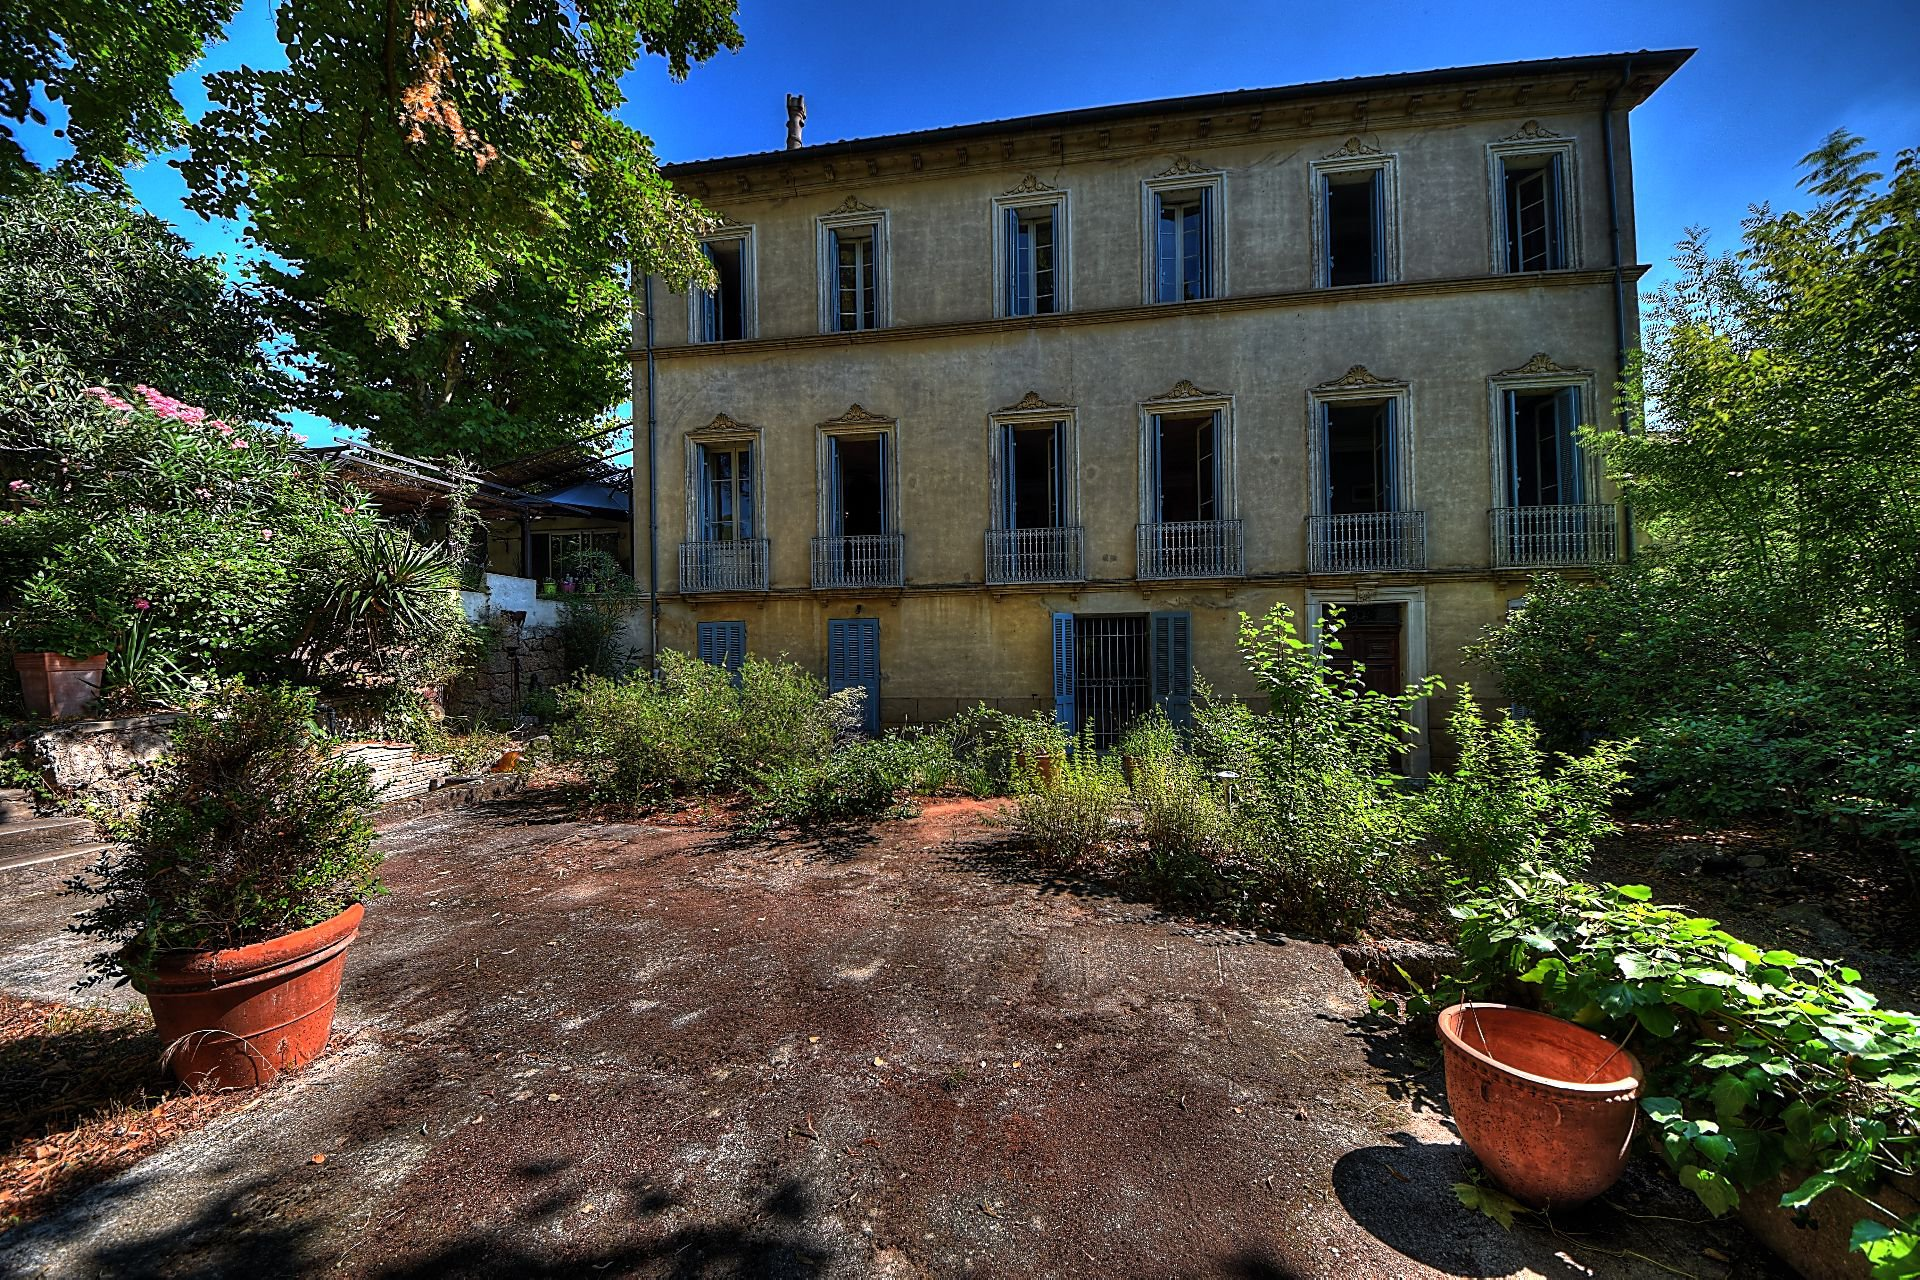 Superb mansionwith beautiful garden - In the heart of the village - Les Arcs Var Provence